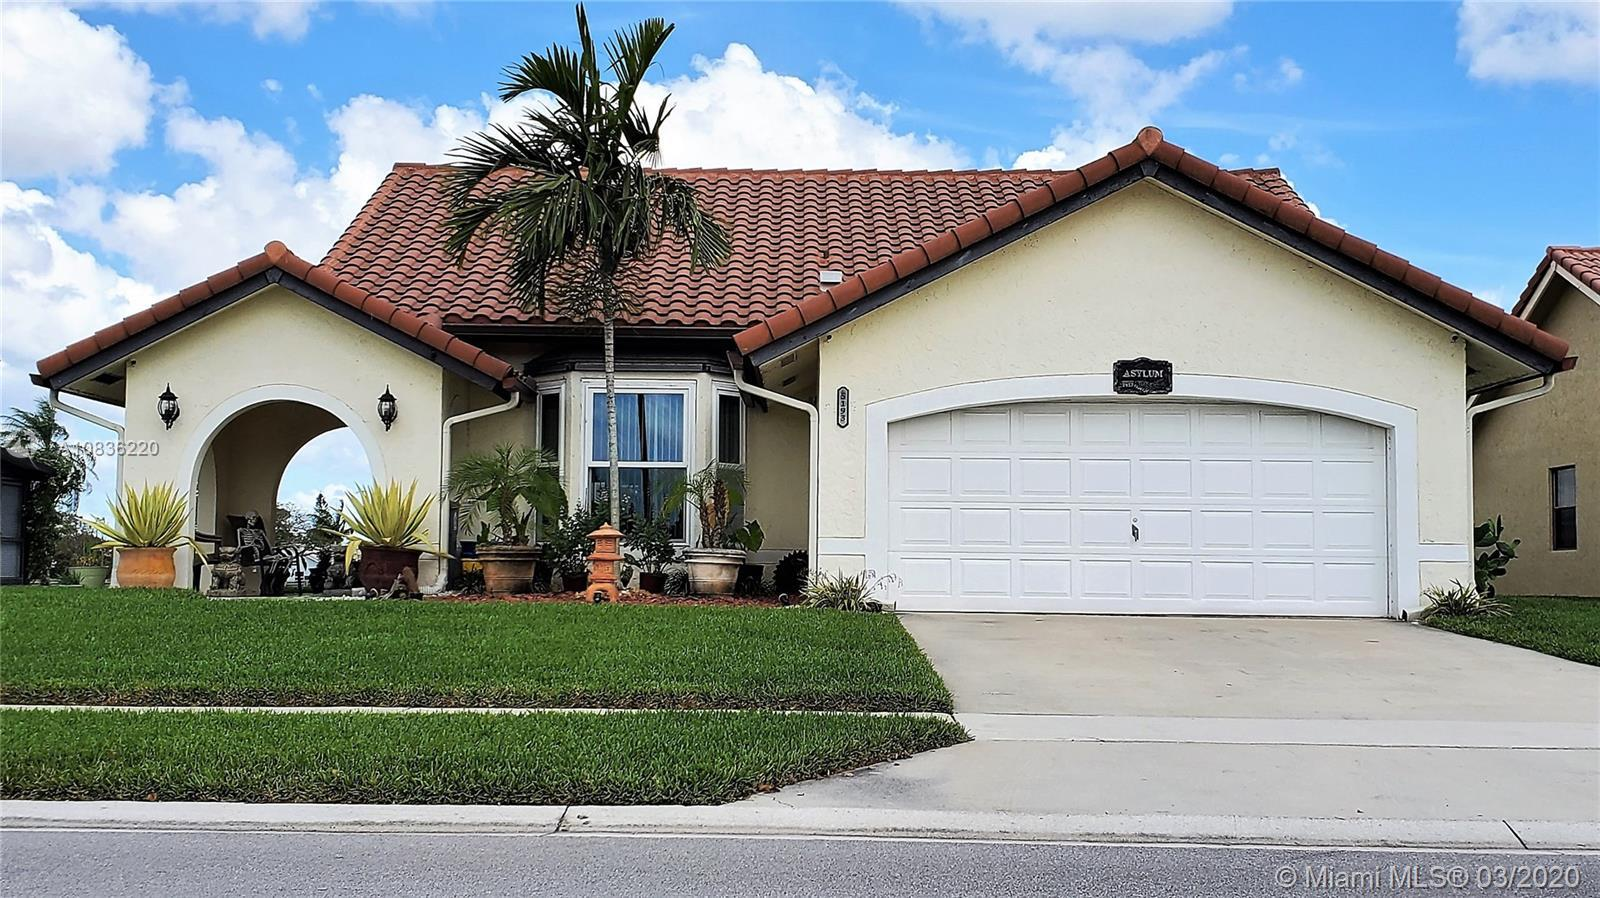 The perfect neighborhood with a quiet and friendly atmosphere! This community is pet friendly and ha